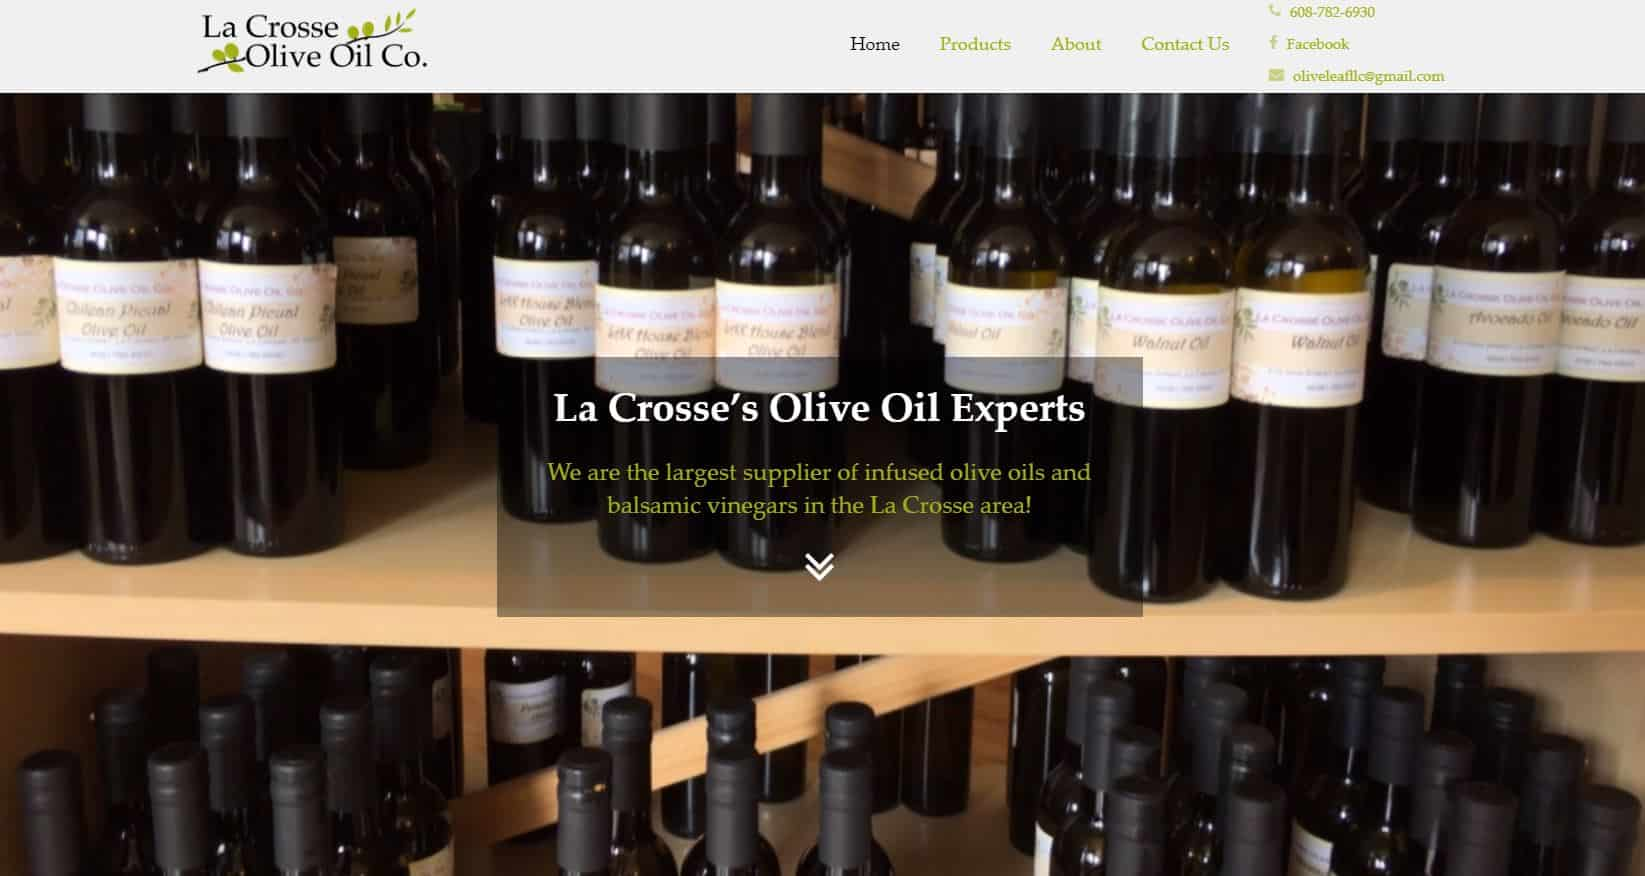 La Crosse Olive Oil Co